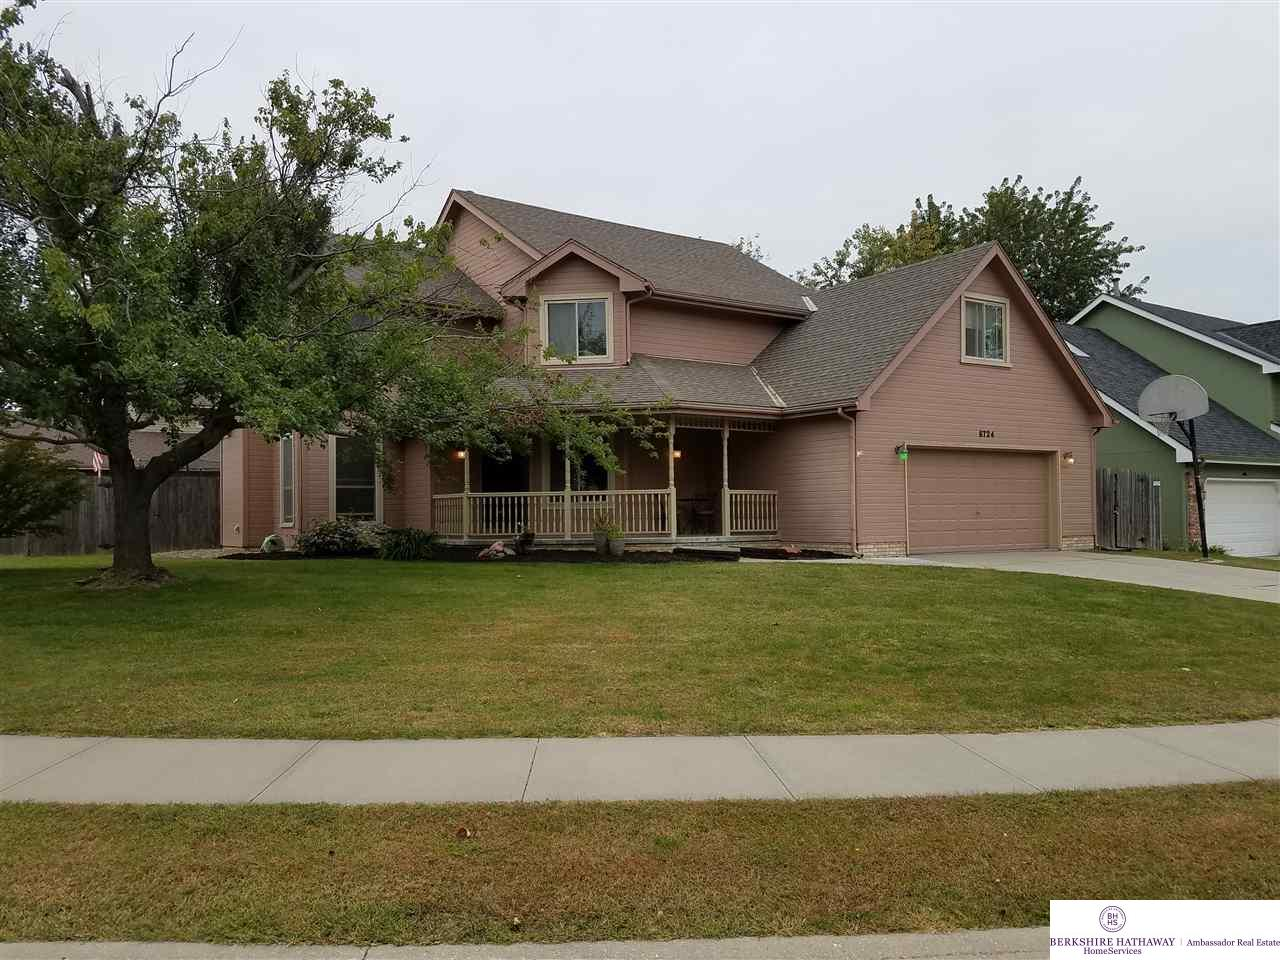 6724 S 91 Street Omaha Home Listings - Nancy Heim-berg Real Estate